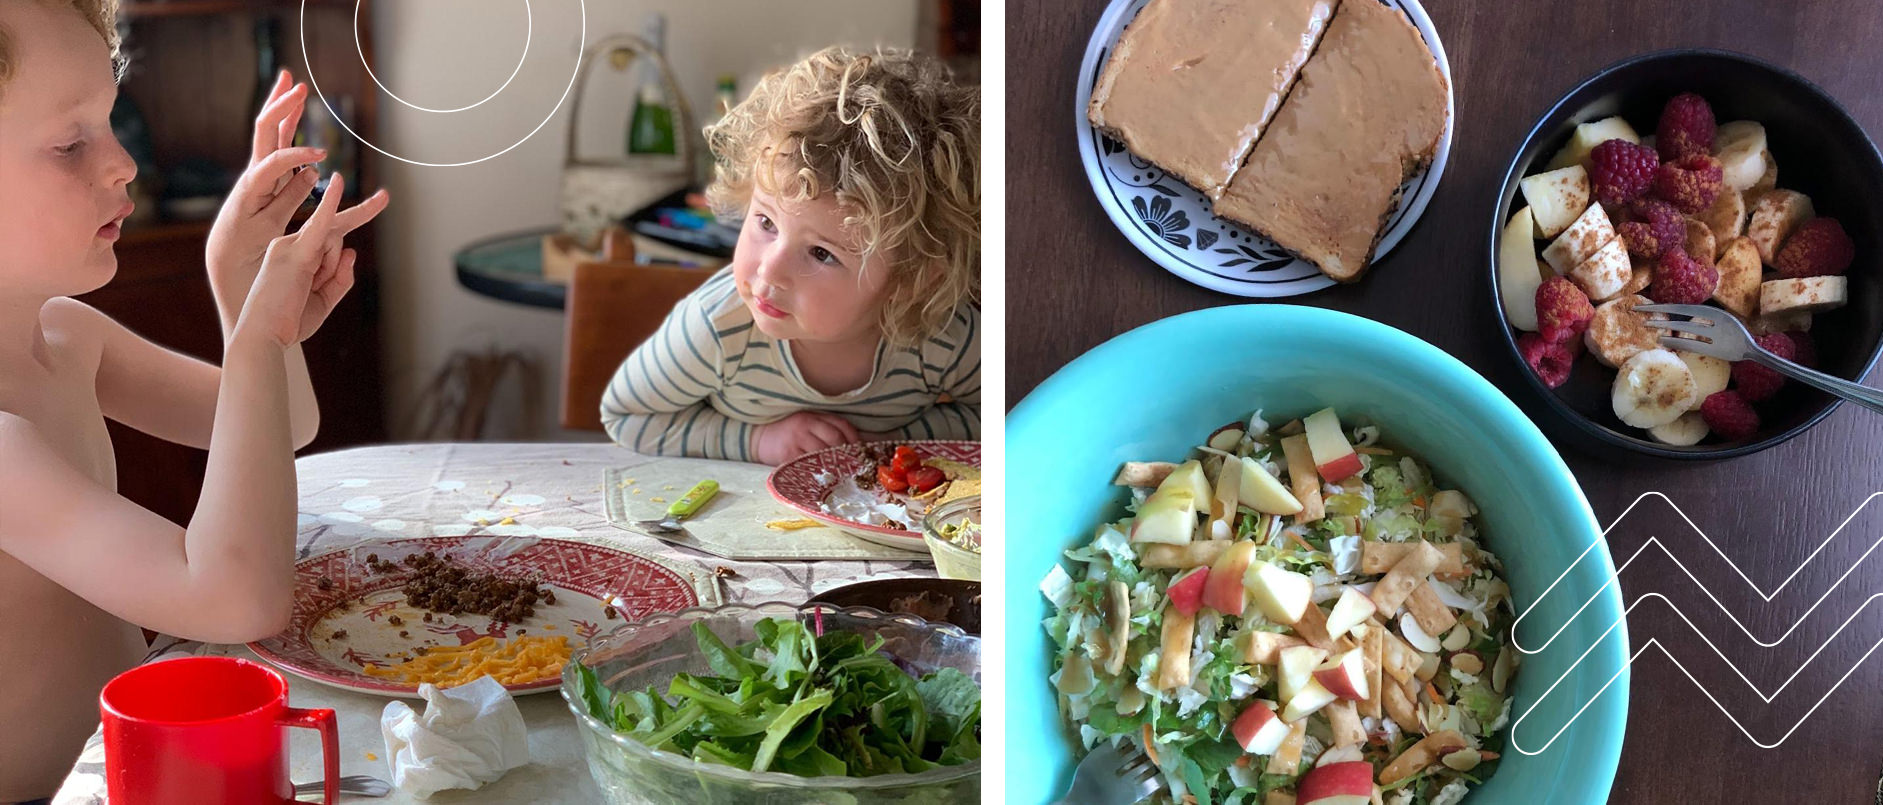 Creativity in Parenting - Eating Well